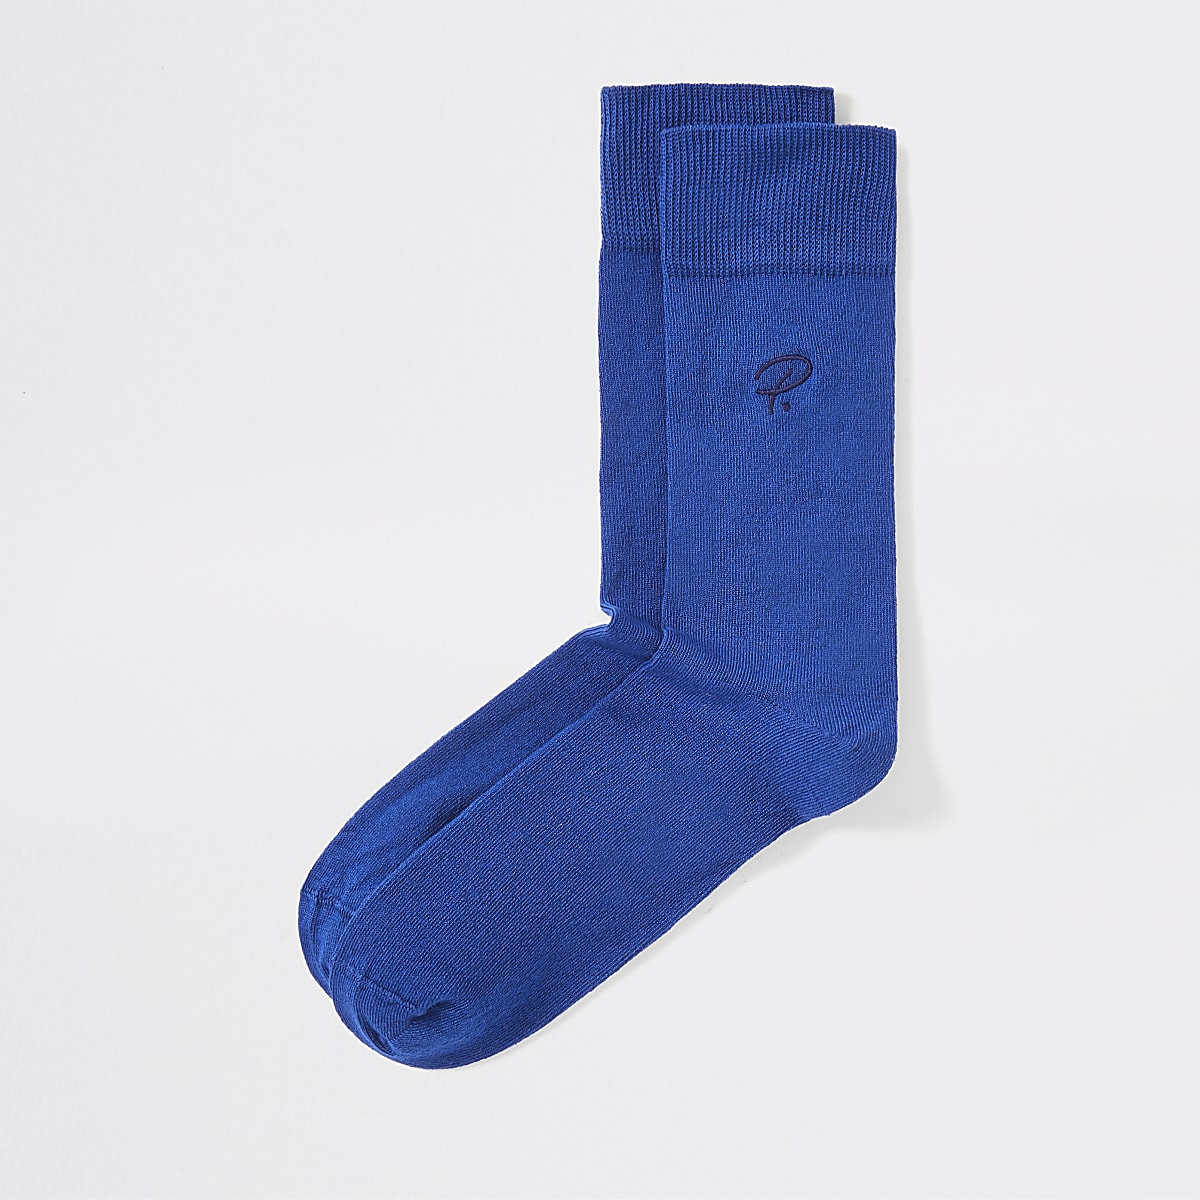 Blue 'Prolific' socks